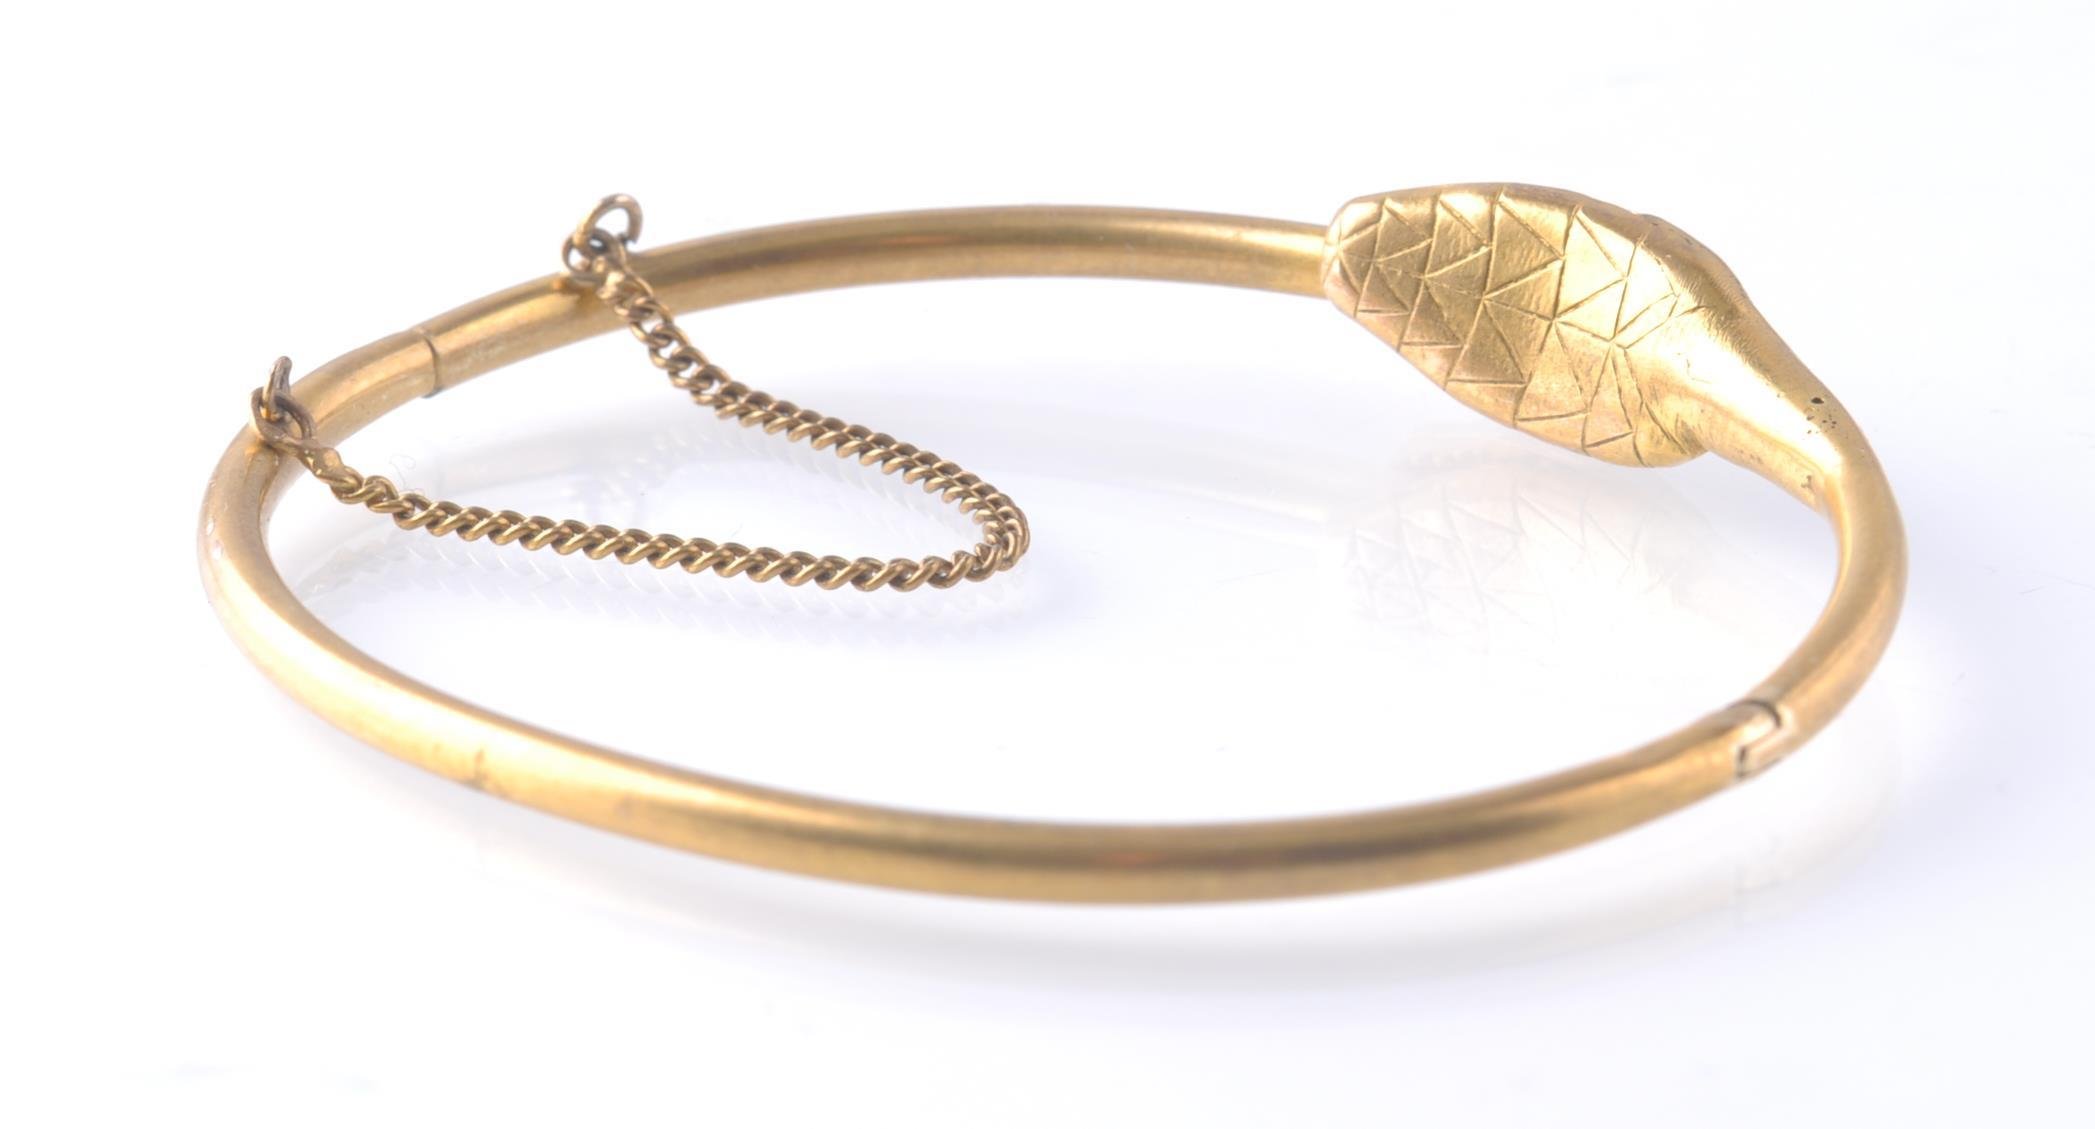 AN ANTIQUE OUROBOROS GOLD AND RUBY SNAKE BANGLE - Image 3 of 4